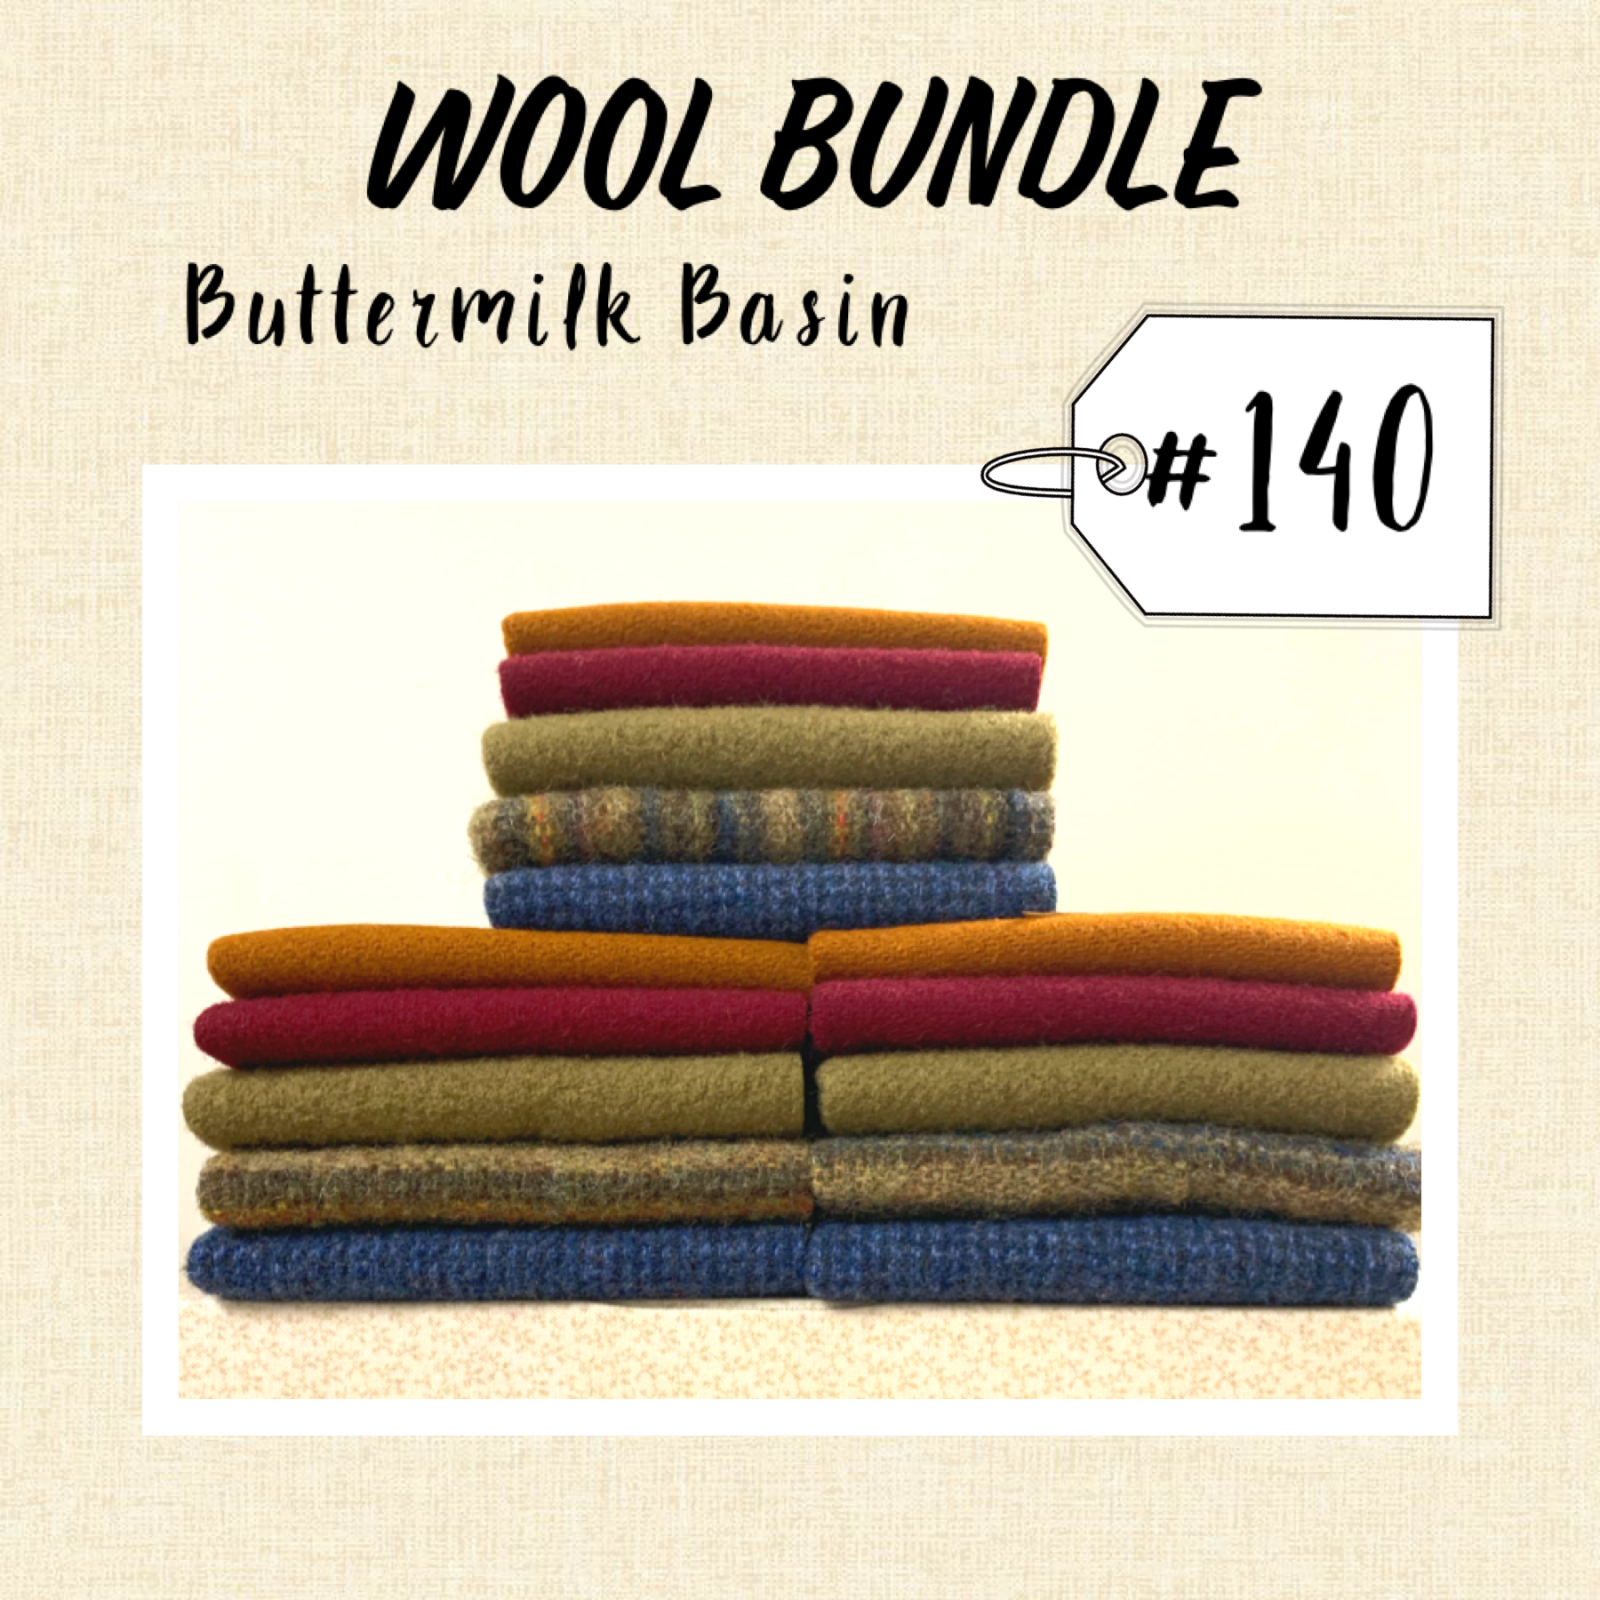 Wool Bundle #140B